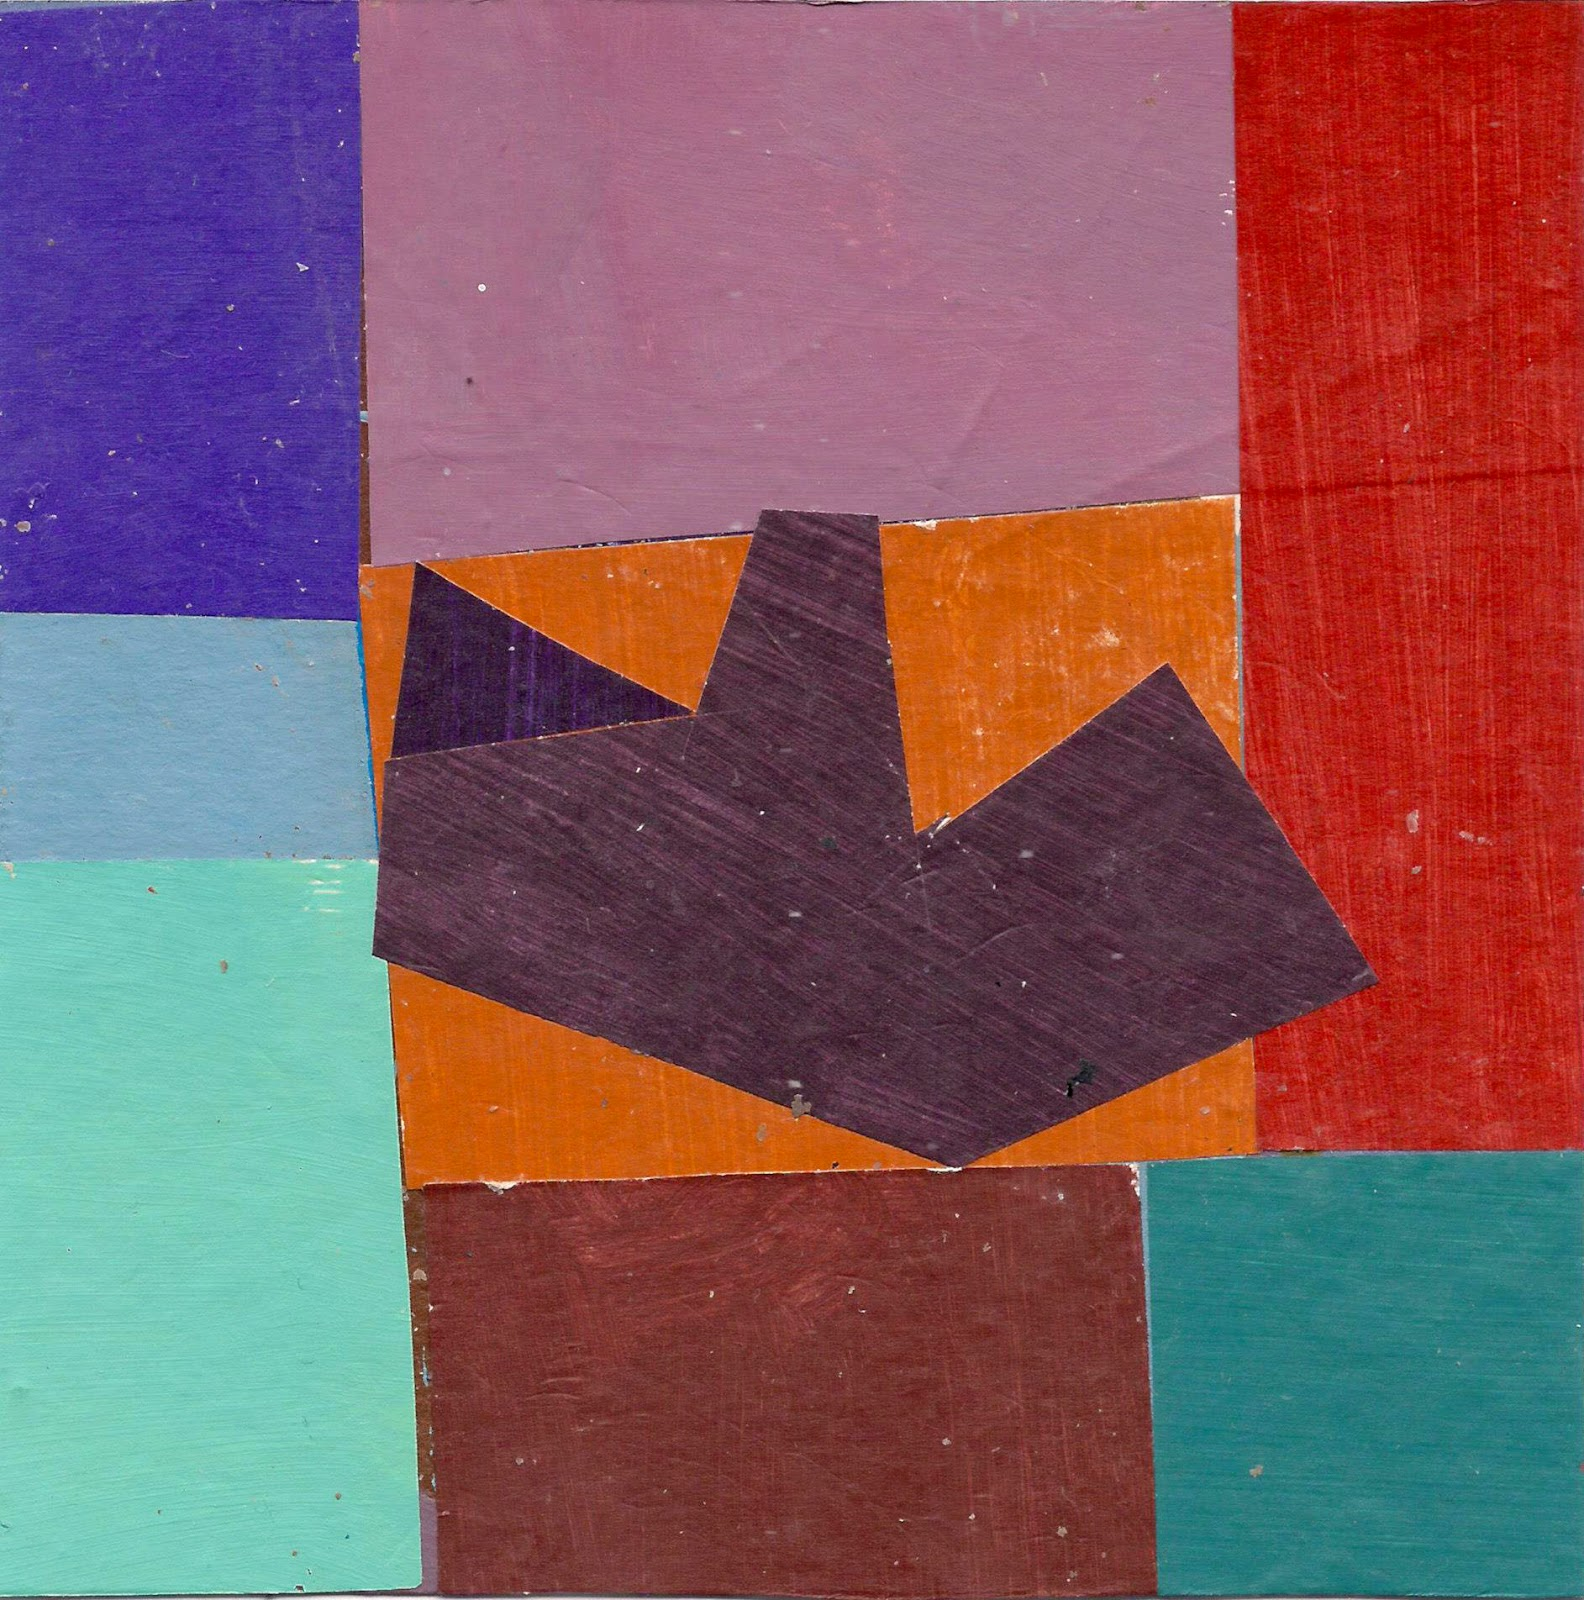 Painting S Of Observation Ken Kewley Notes On Color And Composition